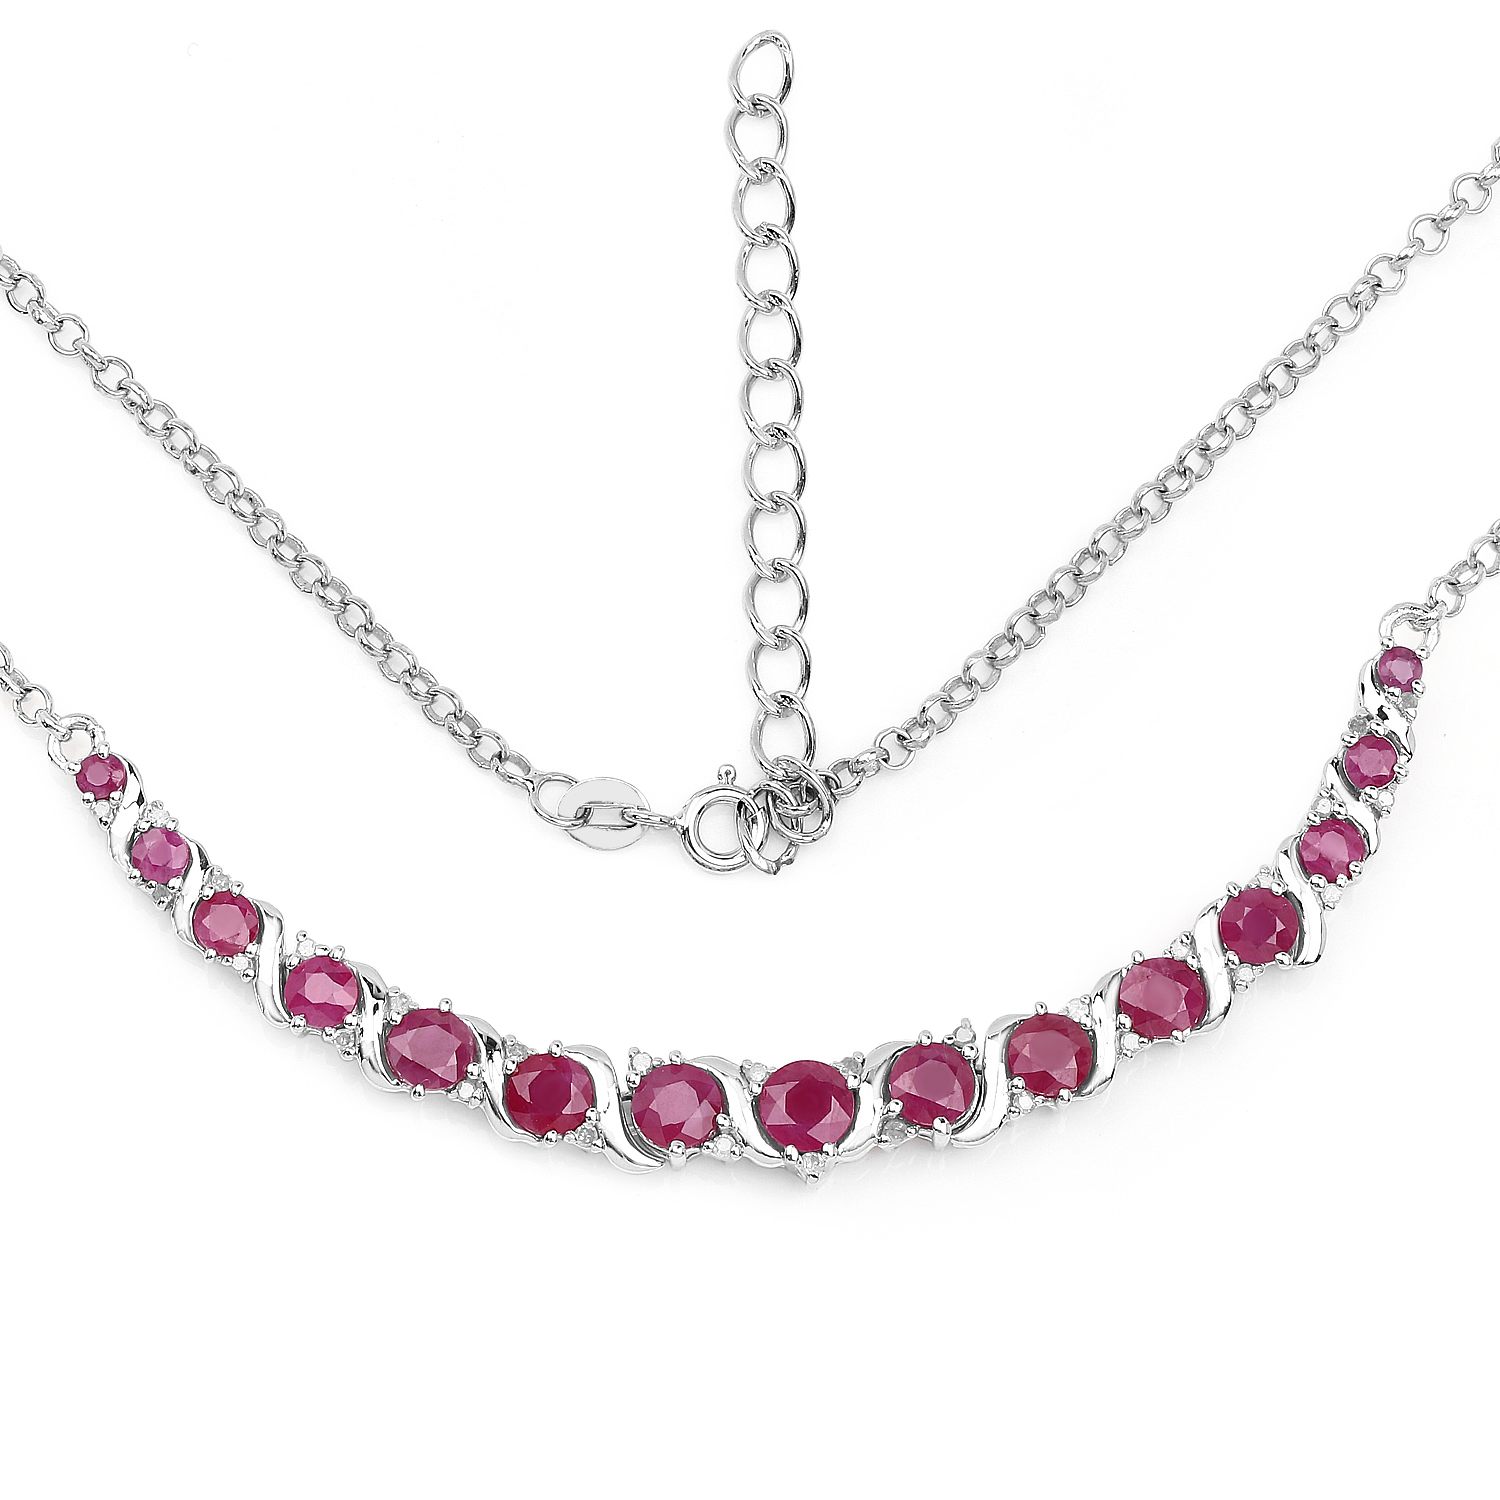 5.09 ct. Genuine Ruby and White Diamond Sterling Silver Necklace by DAZYLE